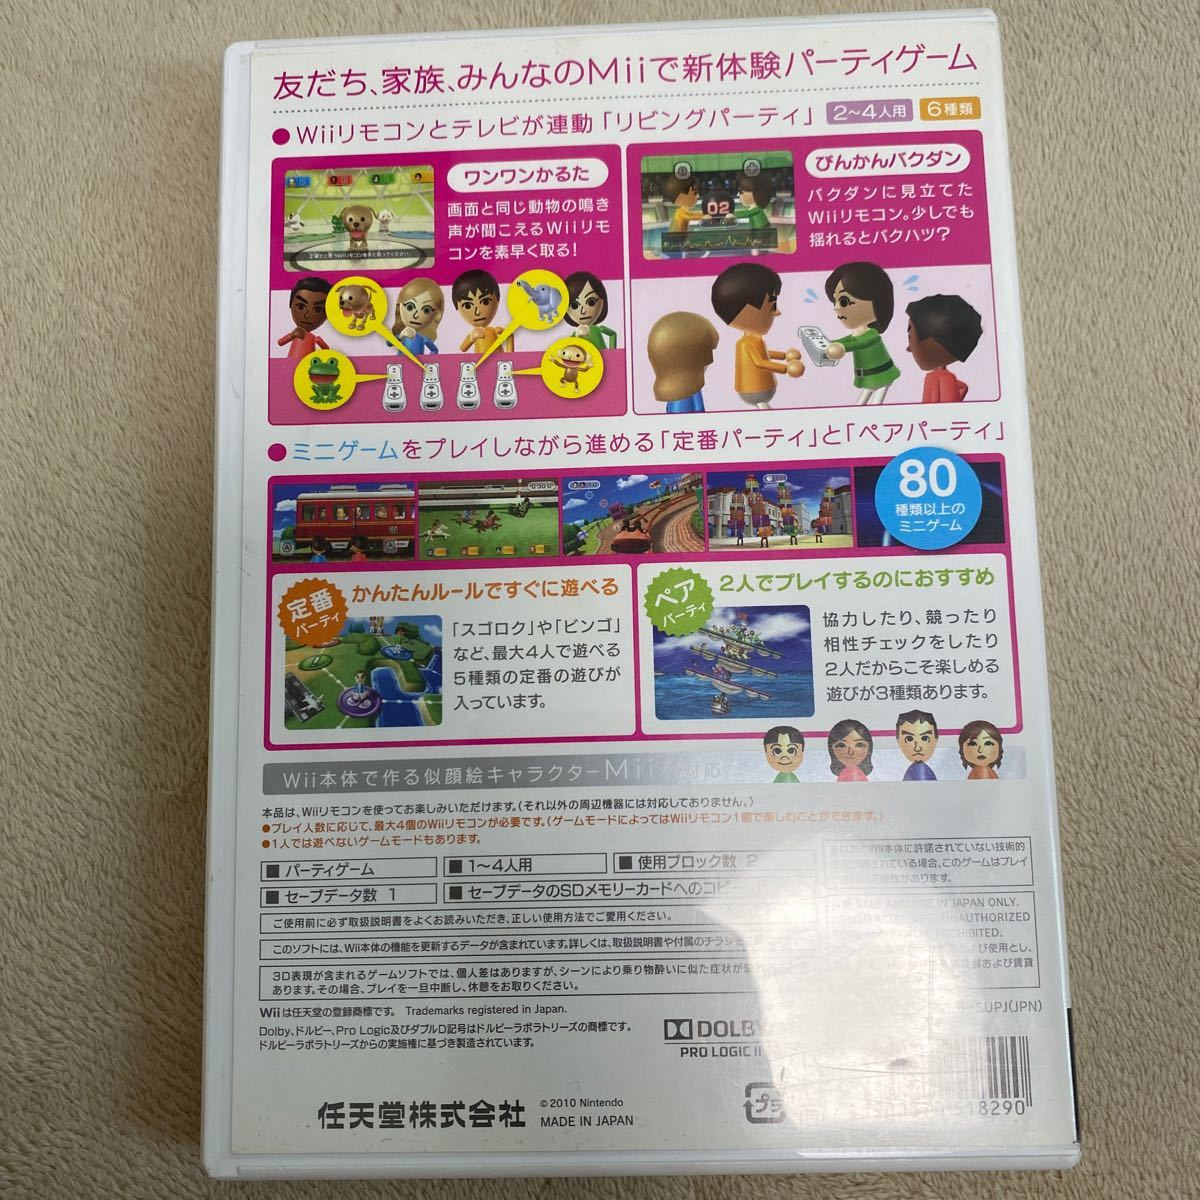 Wiiパーティ Wii Party Wiiパーティー Wiiソフト 任天堂 Wii ソフト